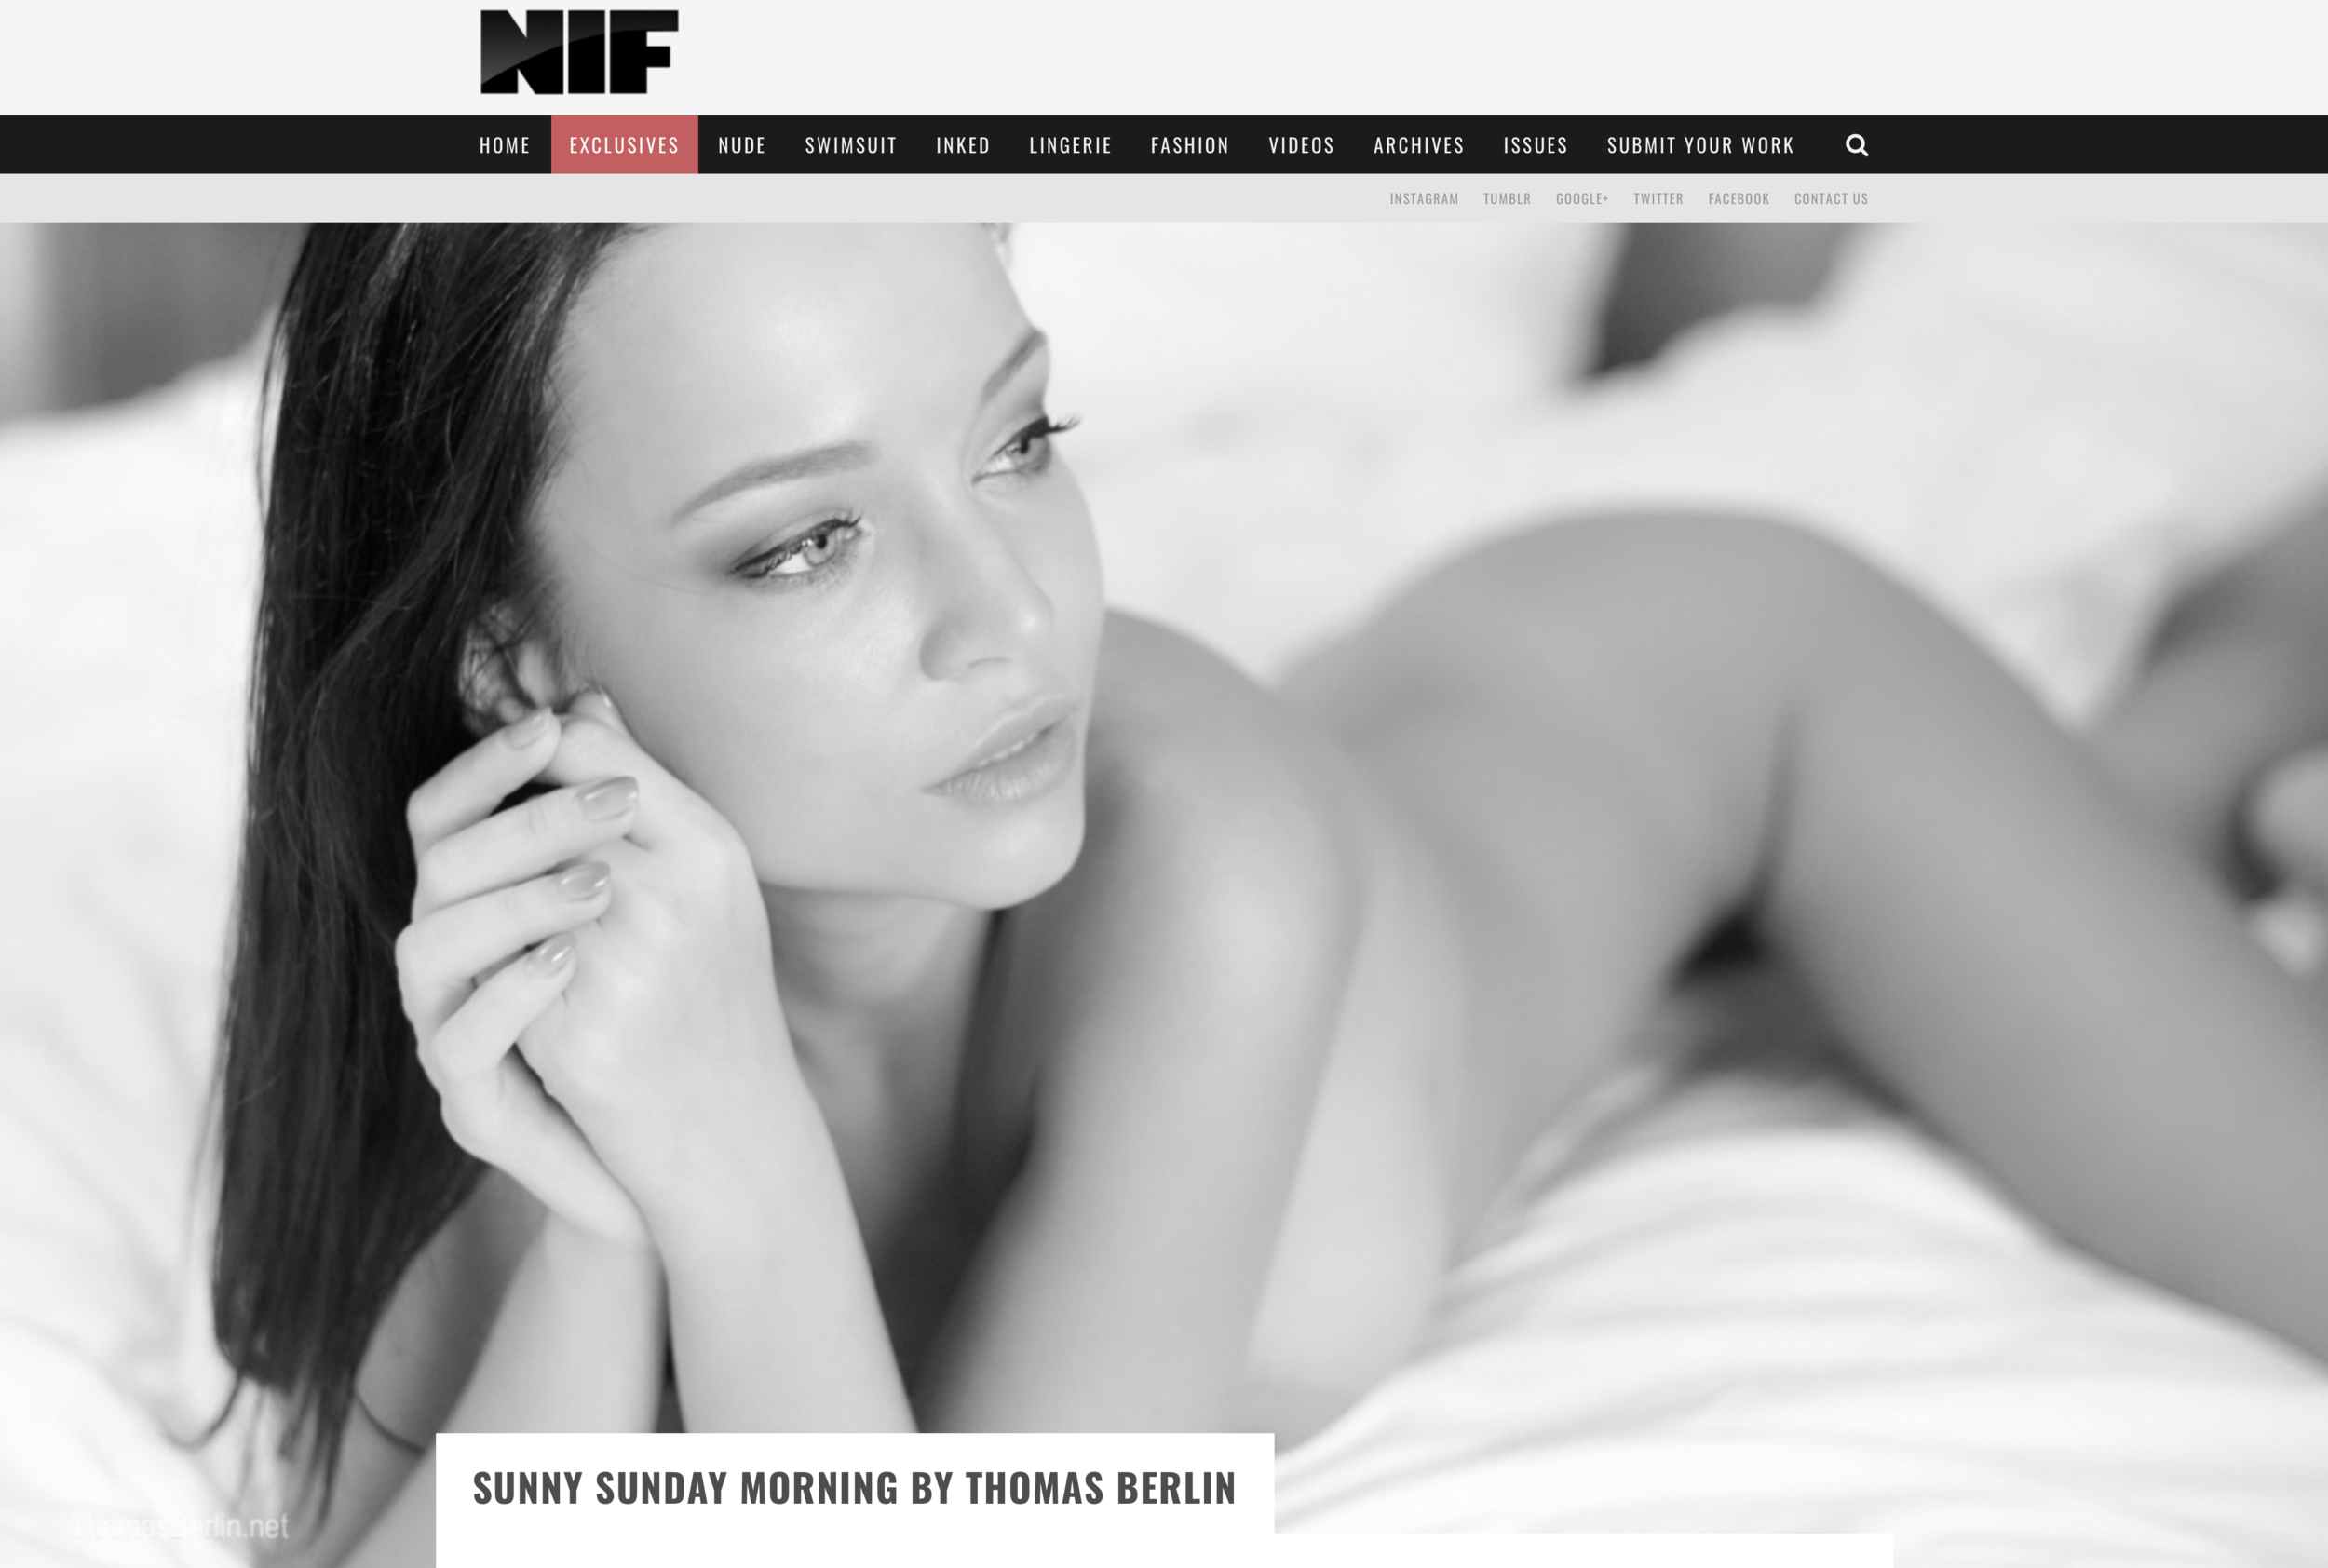 Thomas Berlin published in NIF Magazine Jan. 2018